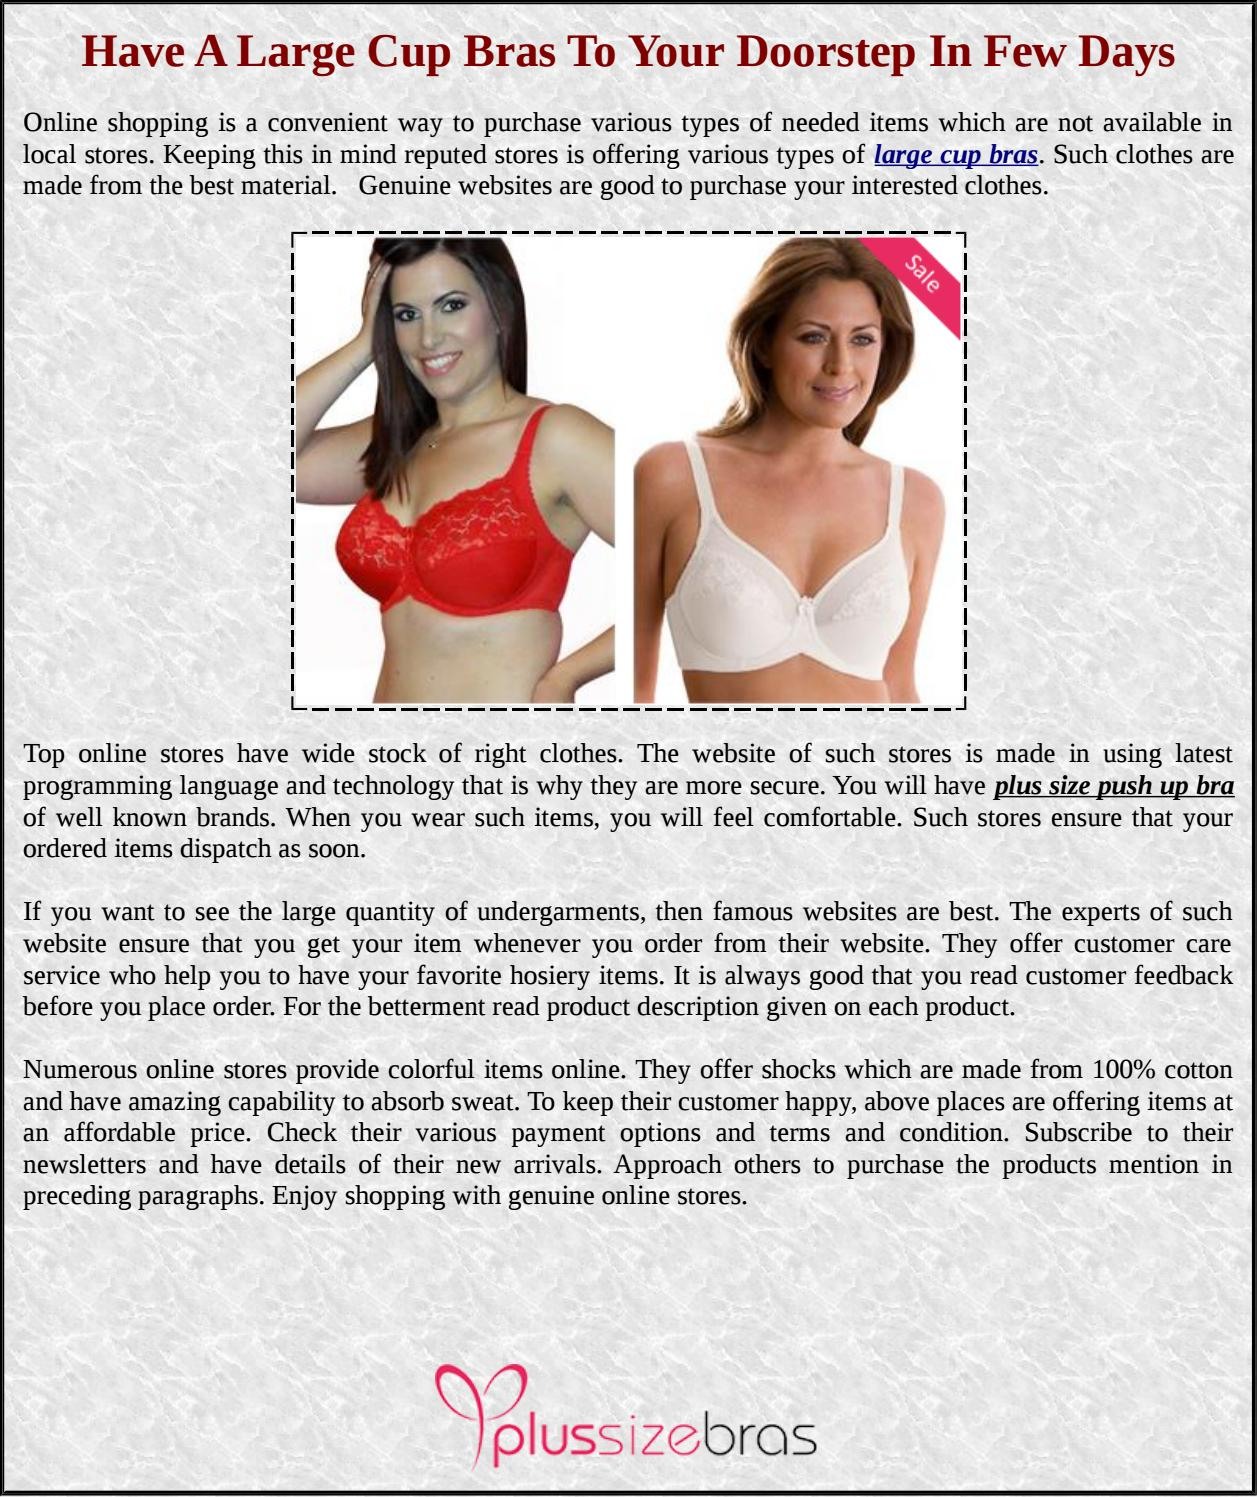 ddc5ad6323f Have A Large Cup Bras To Your Doorstep In Few Days by Plus Size Bras - issuu